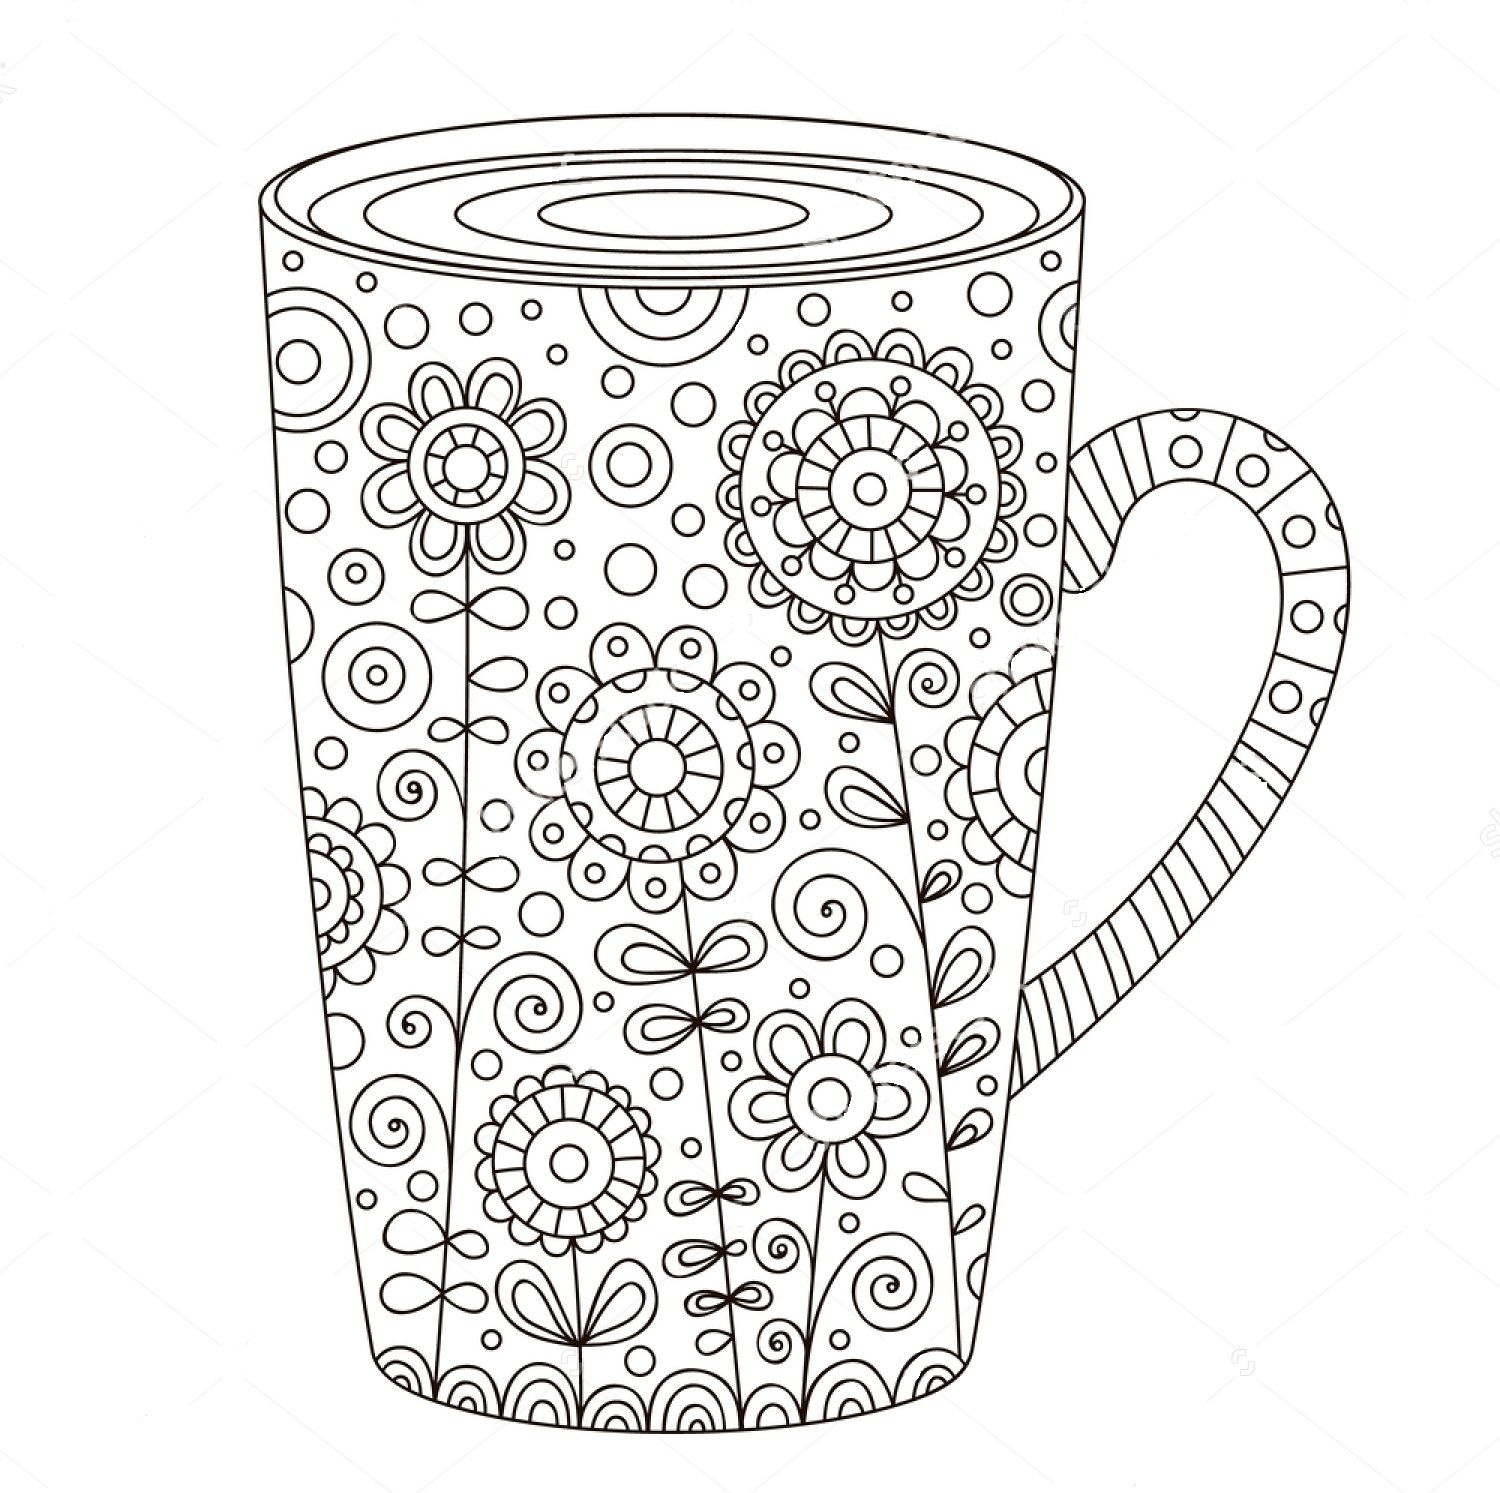 Coffee Mug Coloring Page Google Search Riscos Para Pintura